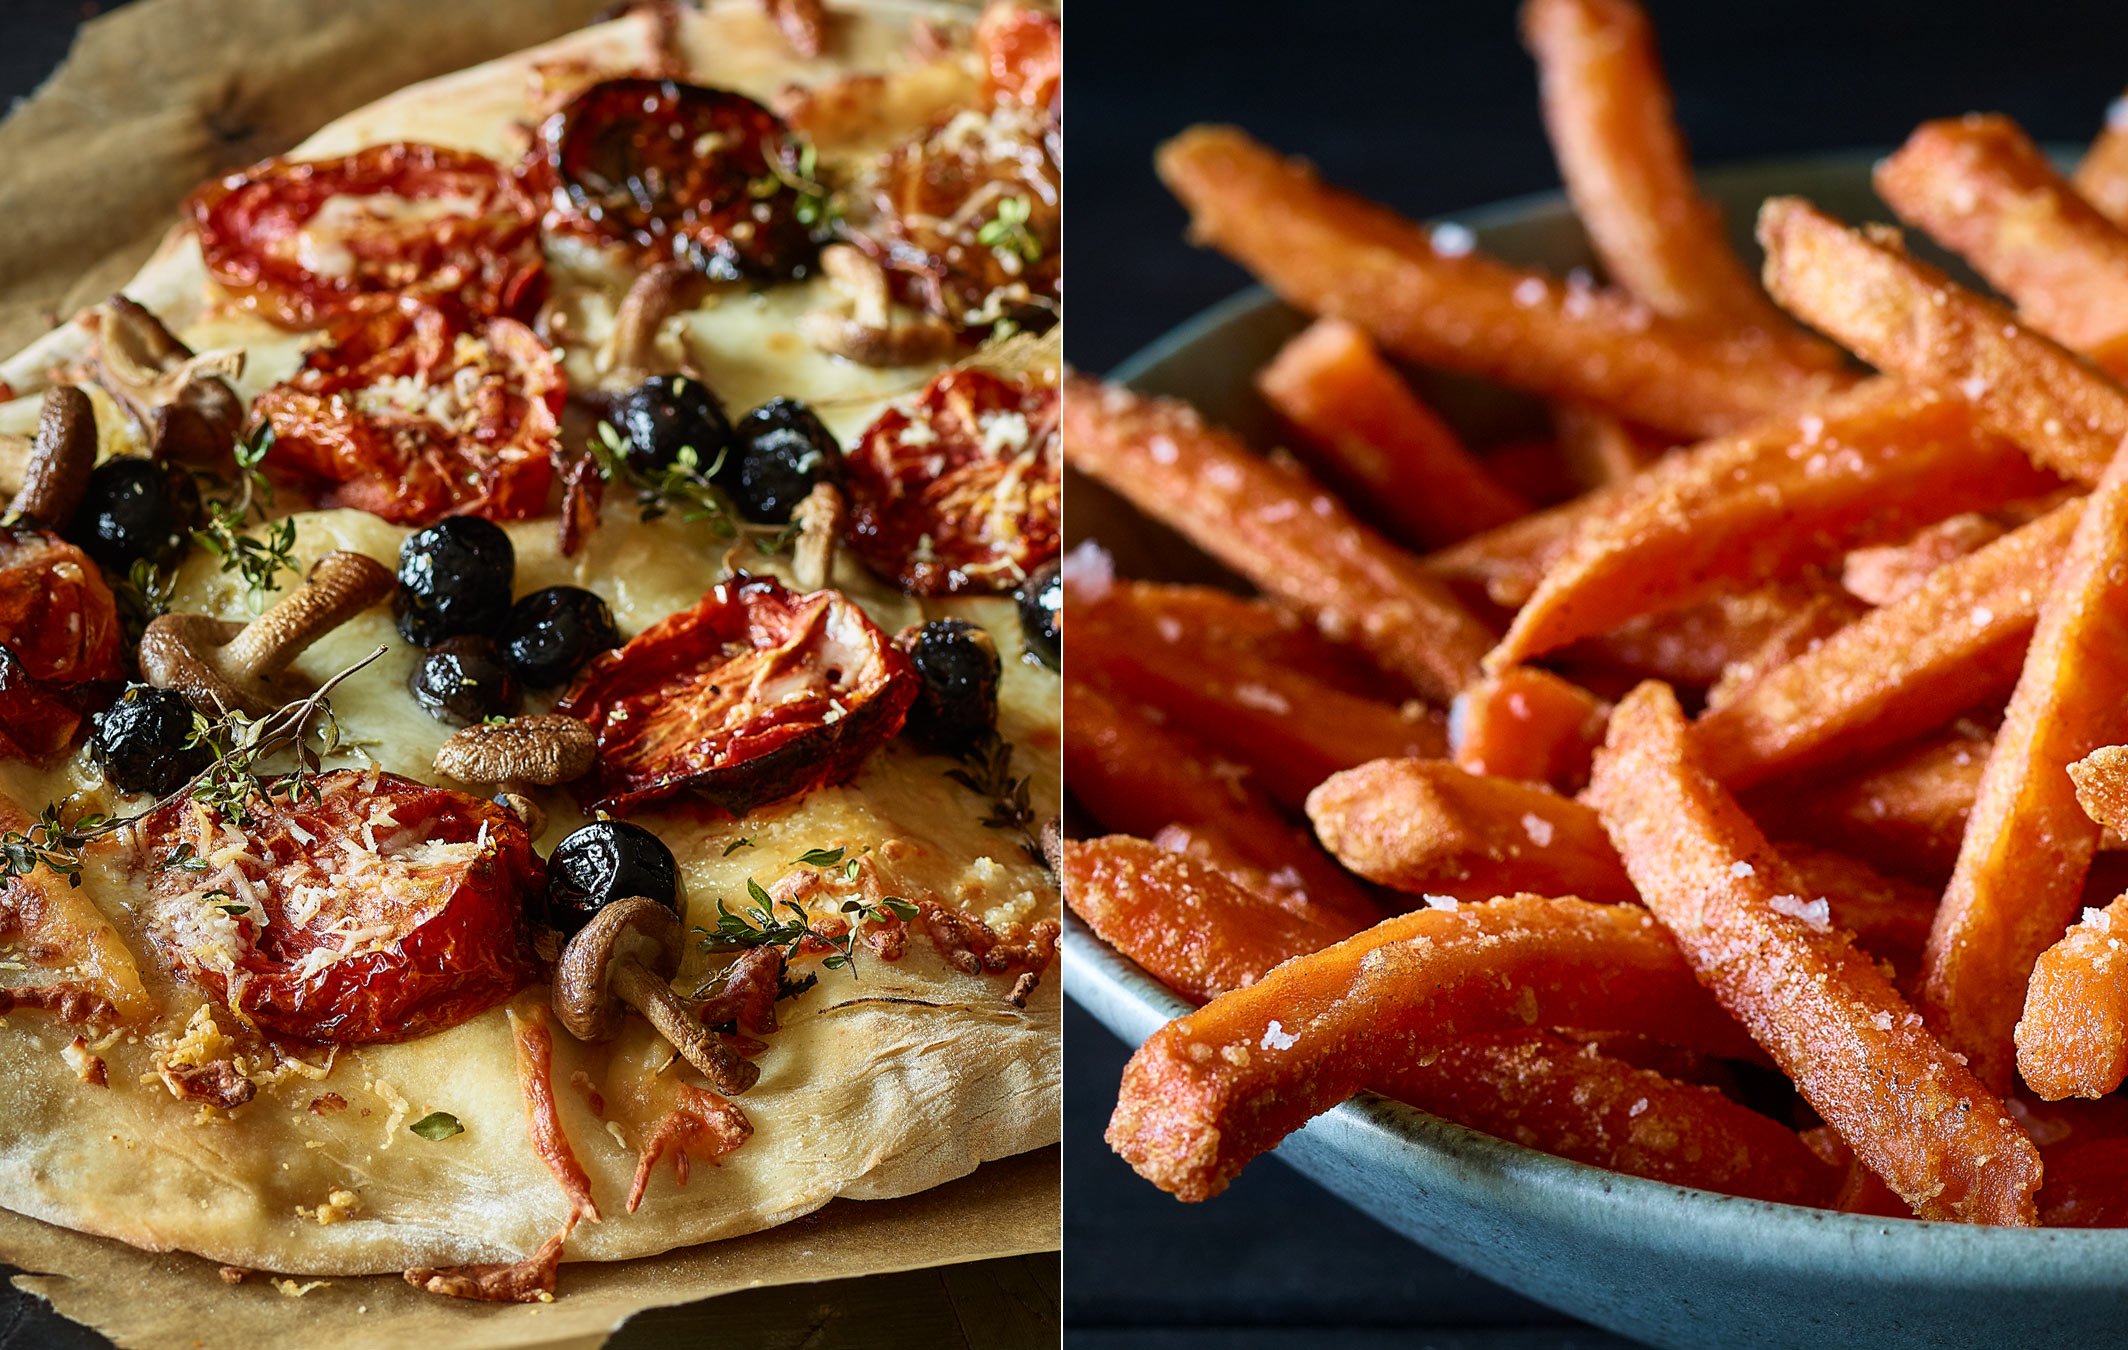 Flatbread Pizza and Sweet Potato Fries